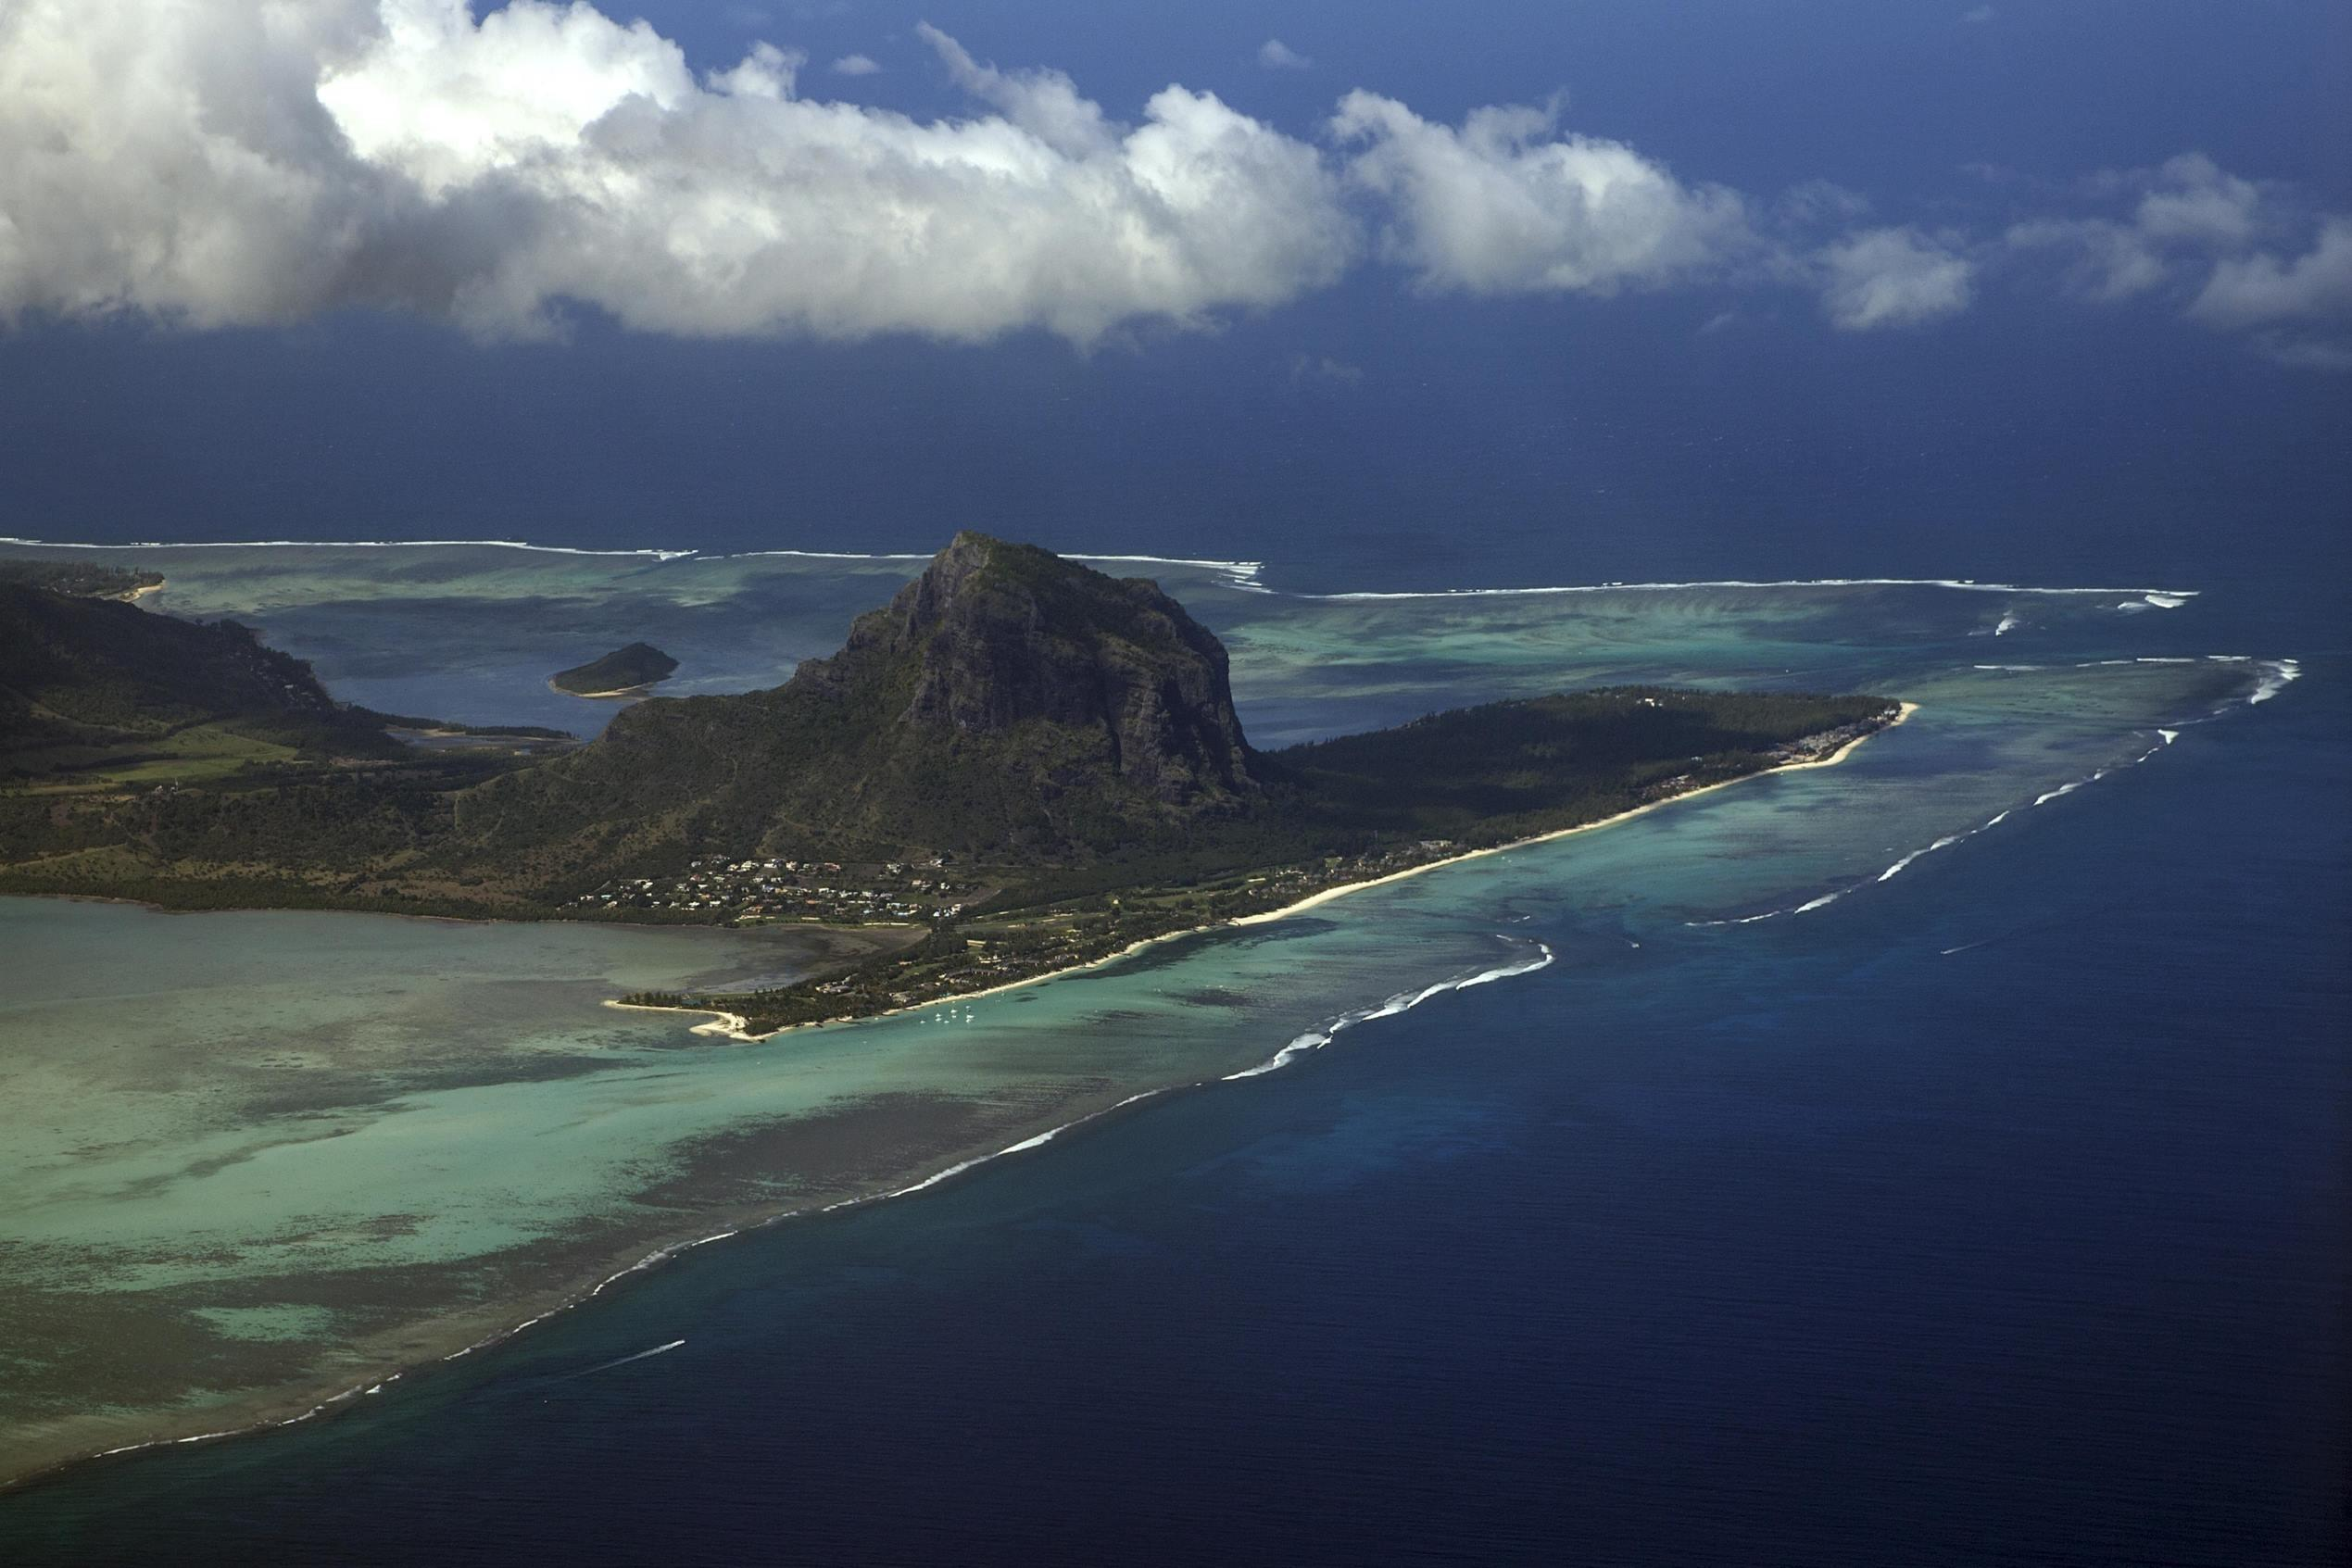 Aerial view, view on the East coast and the peninsula with the Le Morne Brabant beach, Mauritius